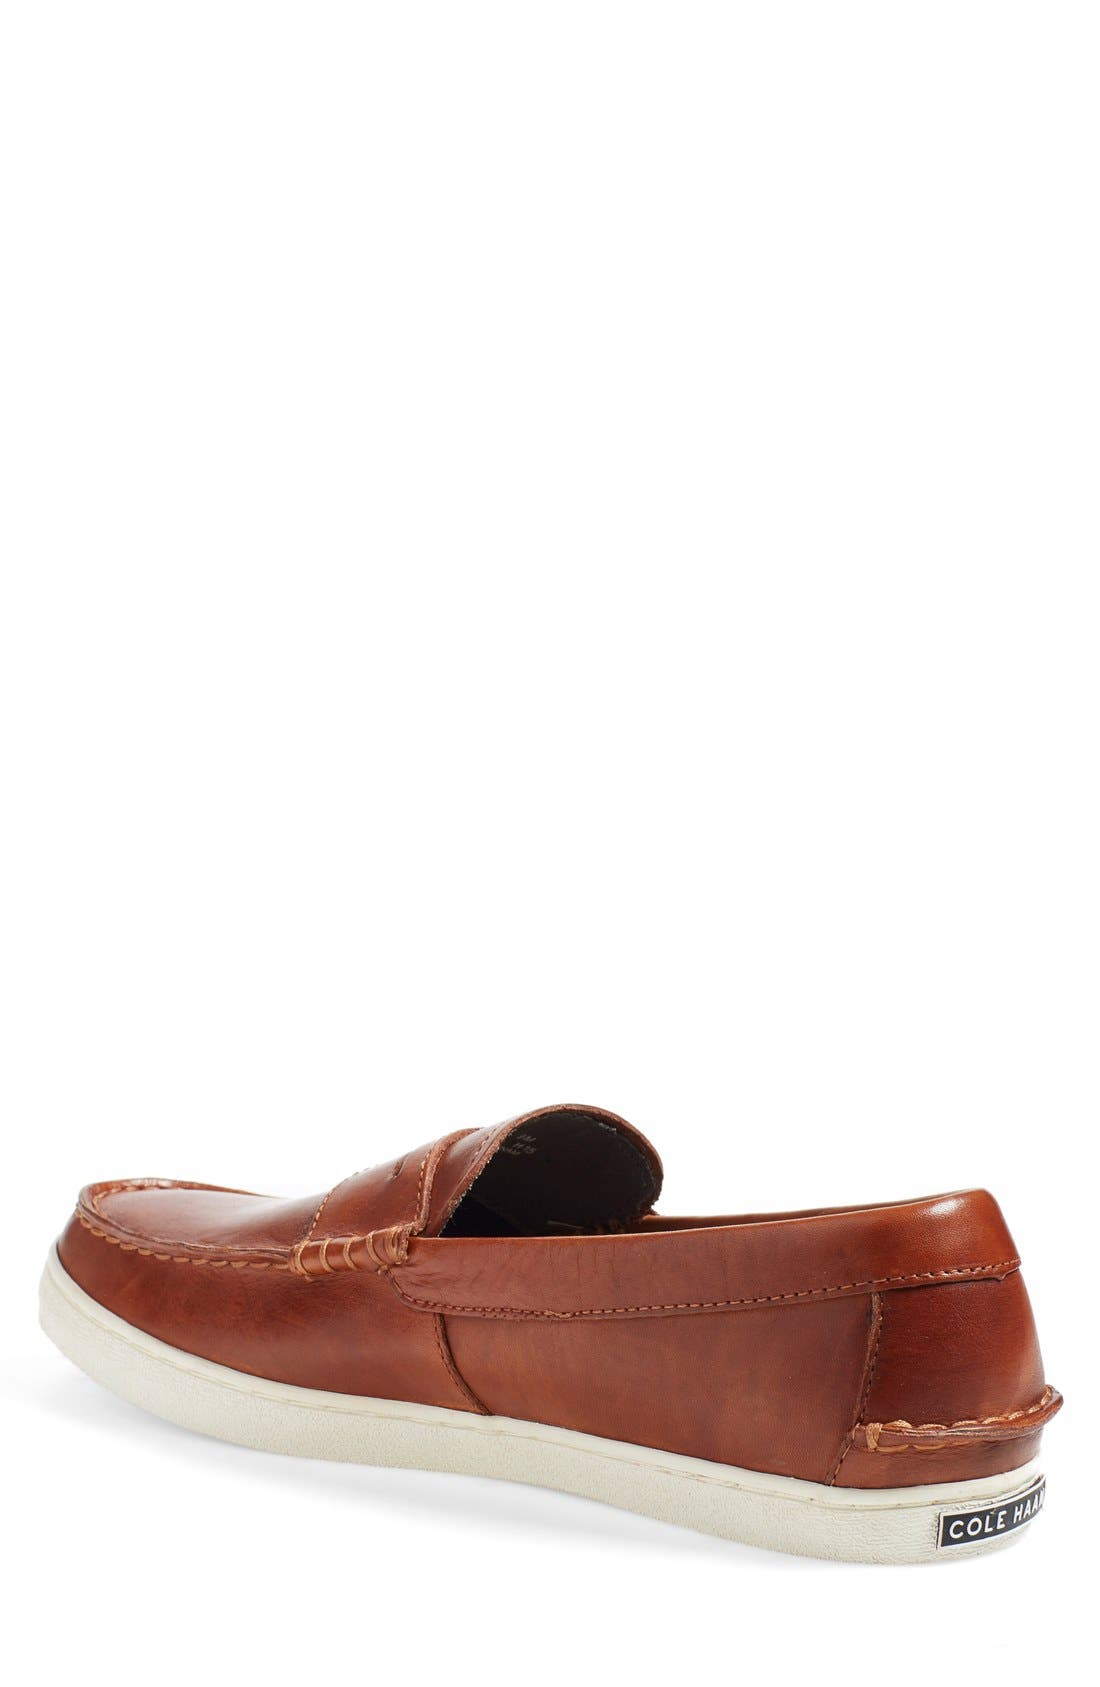 'Pinch' Penny Loafer,                             Alternate thumbnail 2, color,                             BRITISH TAN ANTIQUE LEATHER